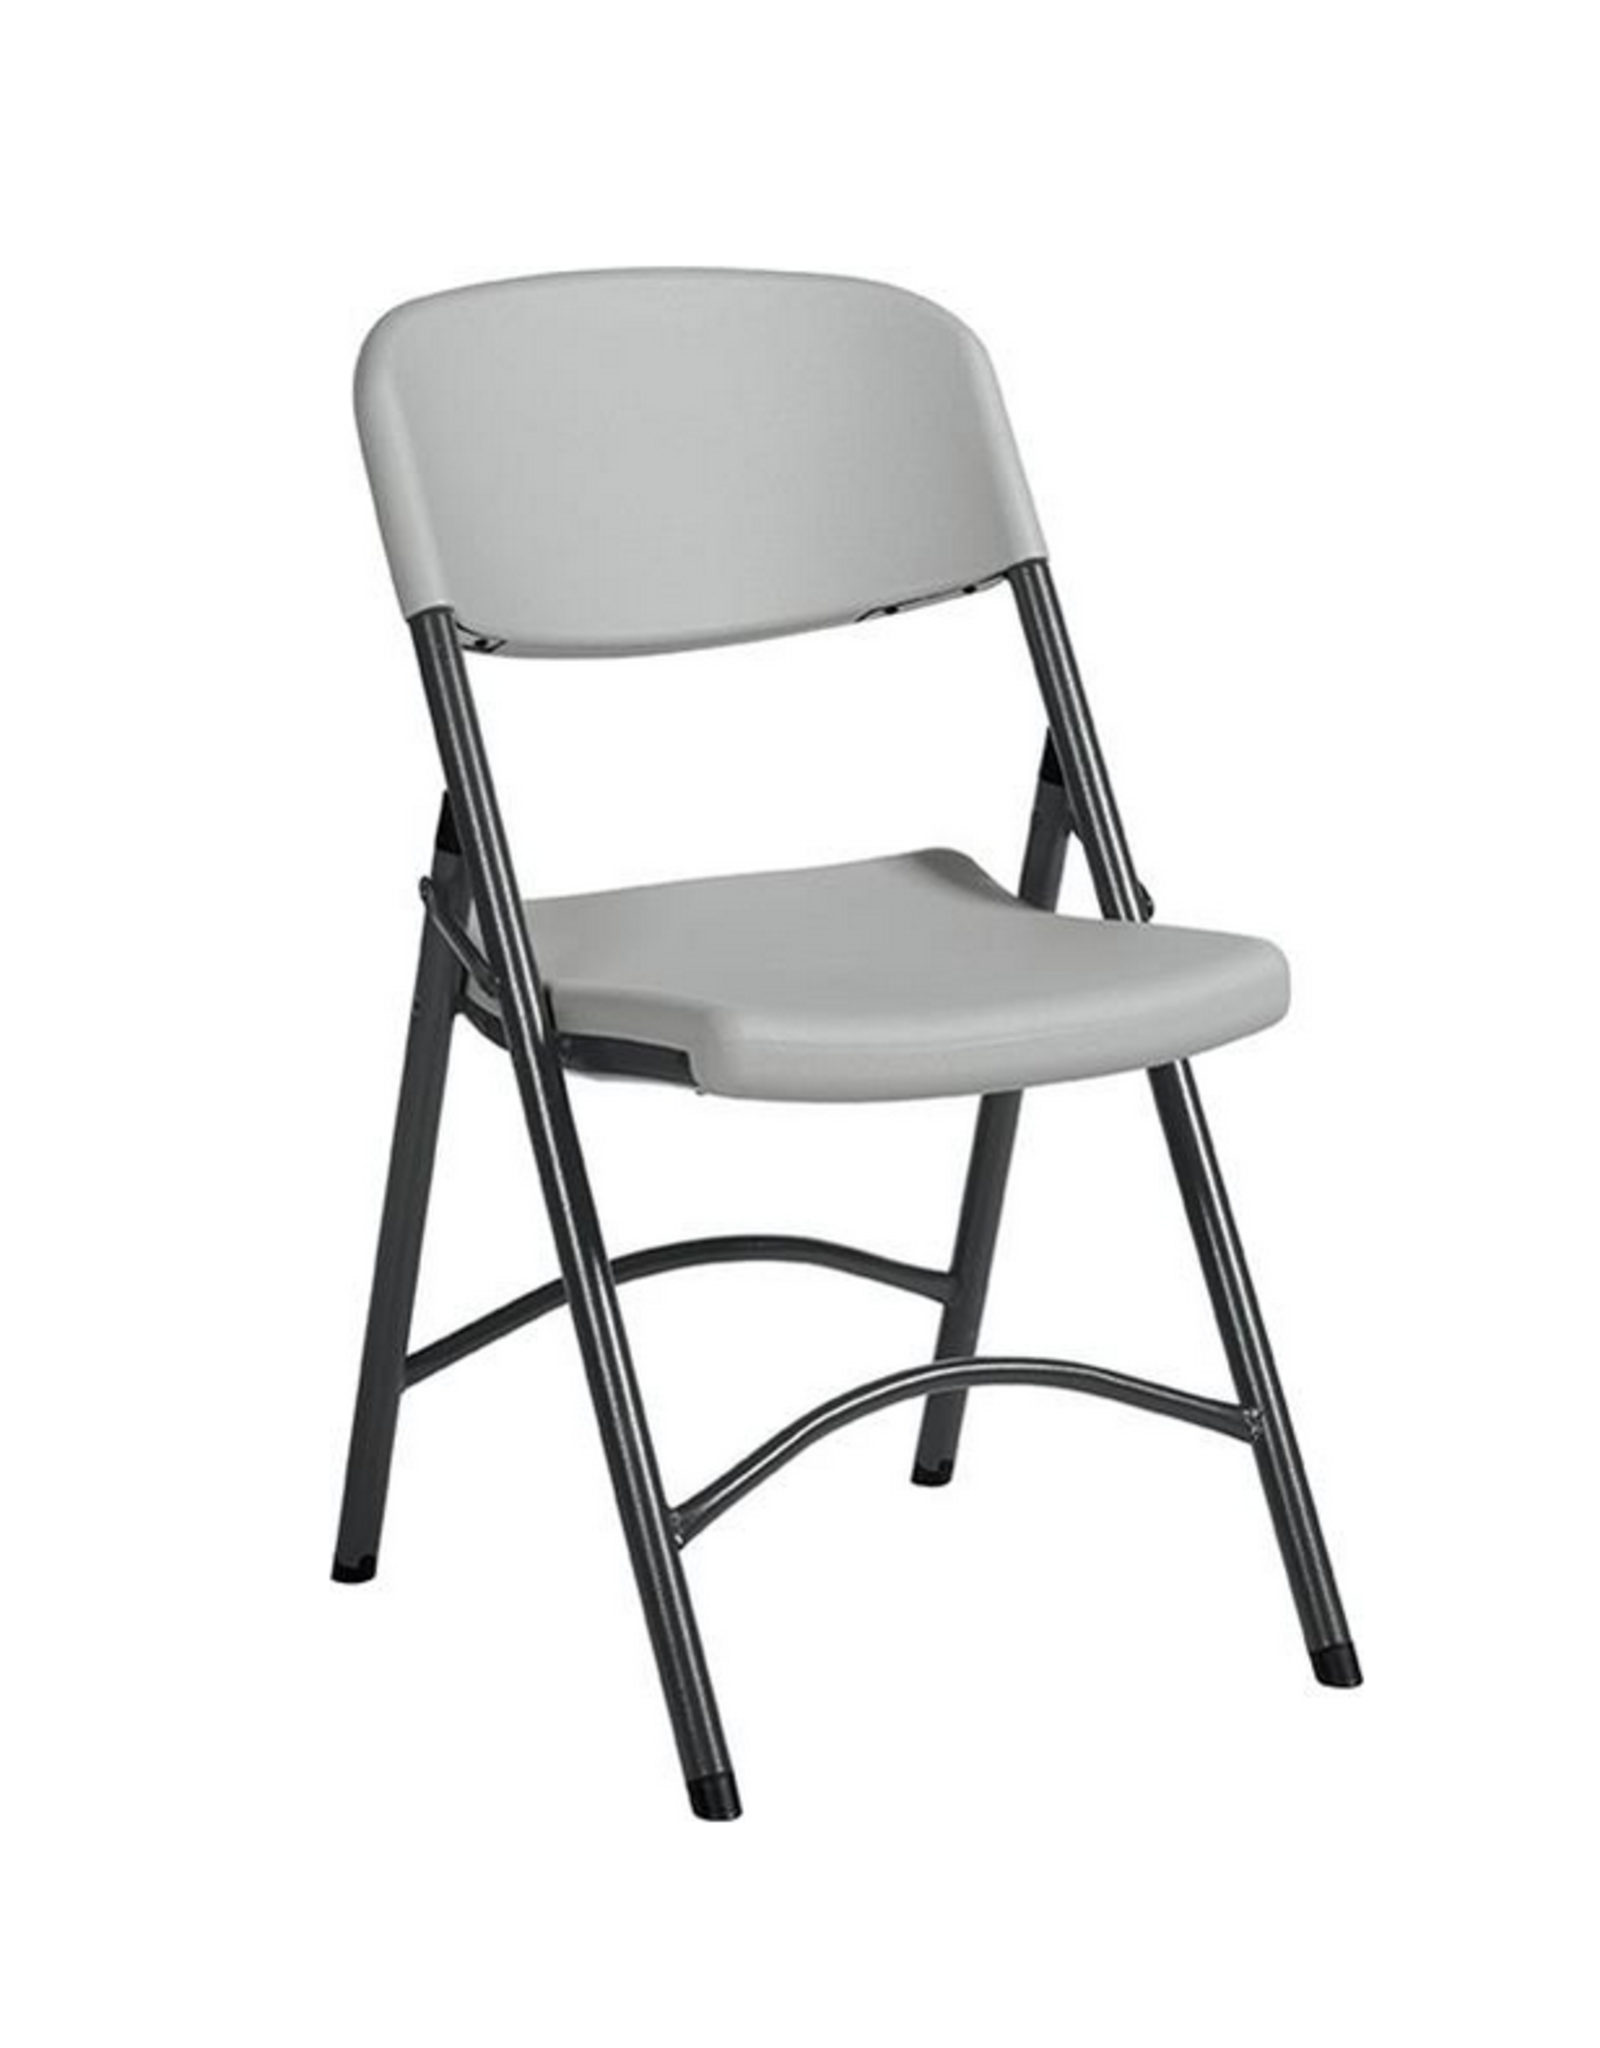 """GLOBAL OFFICE Global Offices To Go, Folding & Stacking Chair, Plastic, White, 21 1/2""""W x 18 1/2""""D x 33""""H"""